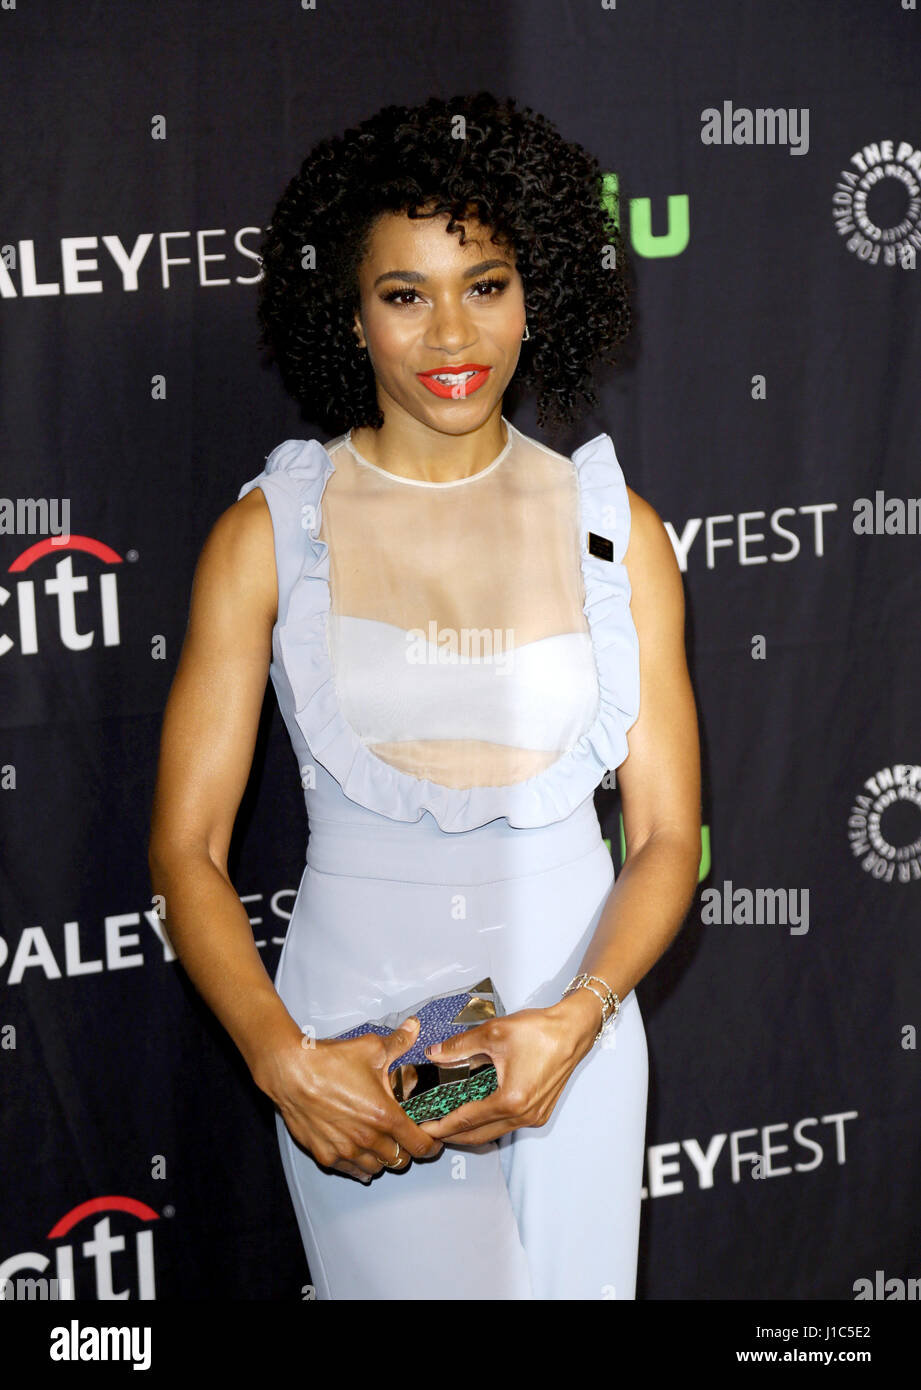 Discussion on this topic: Leona axelsen ringstrom, kelly-mccreary-at-medias/